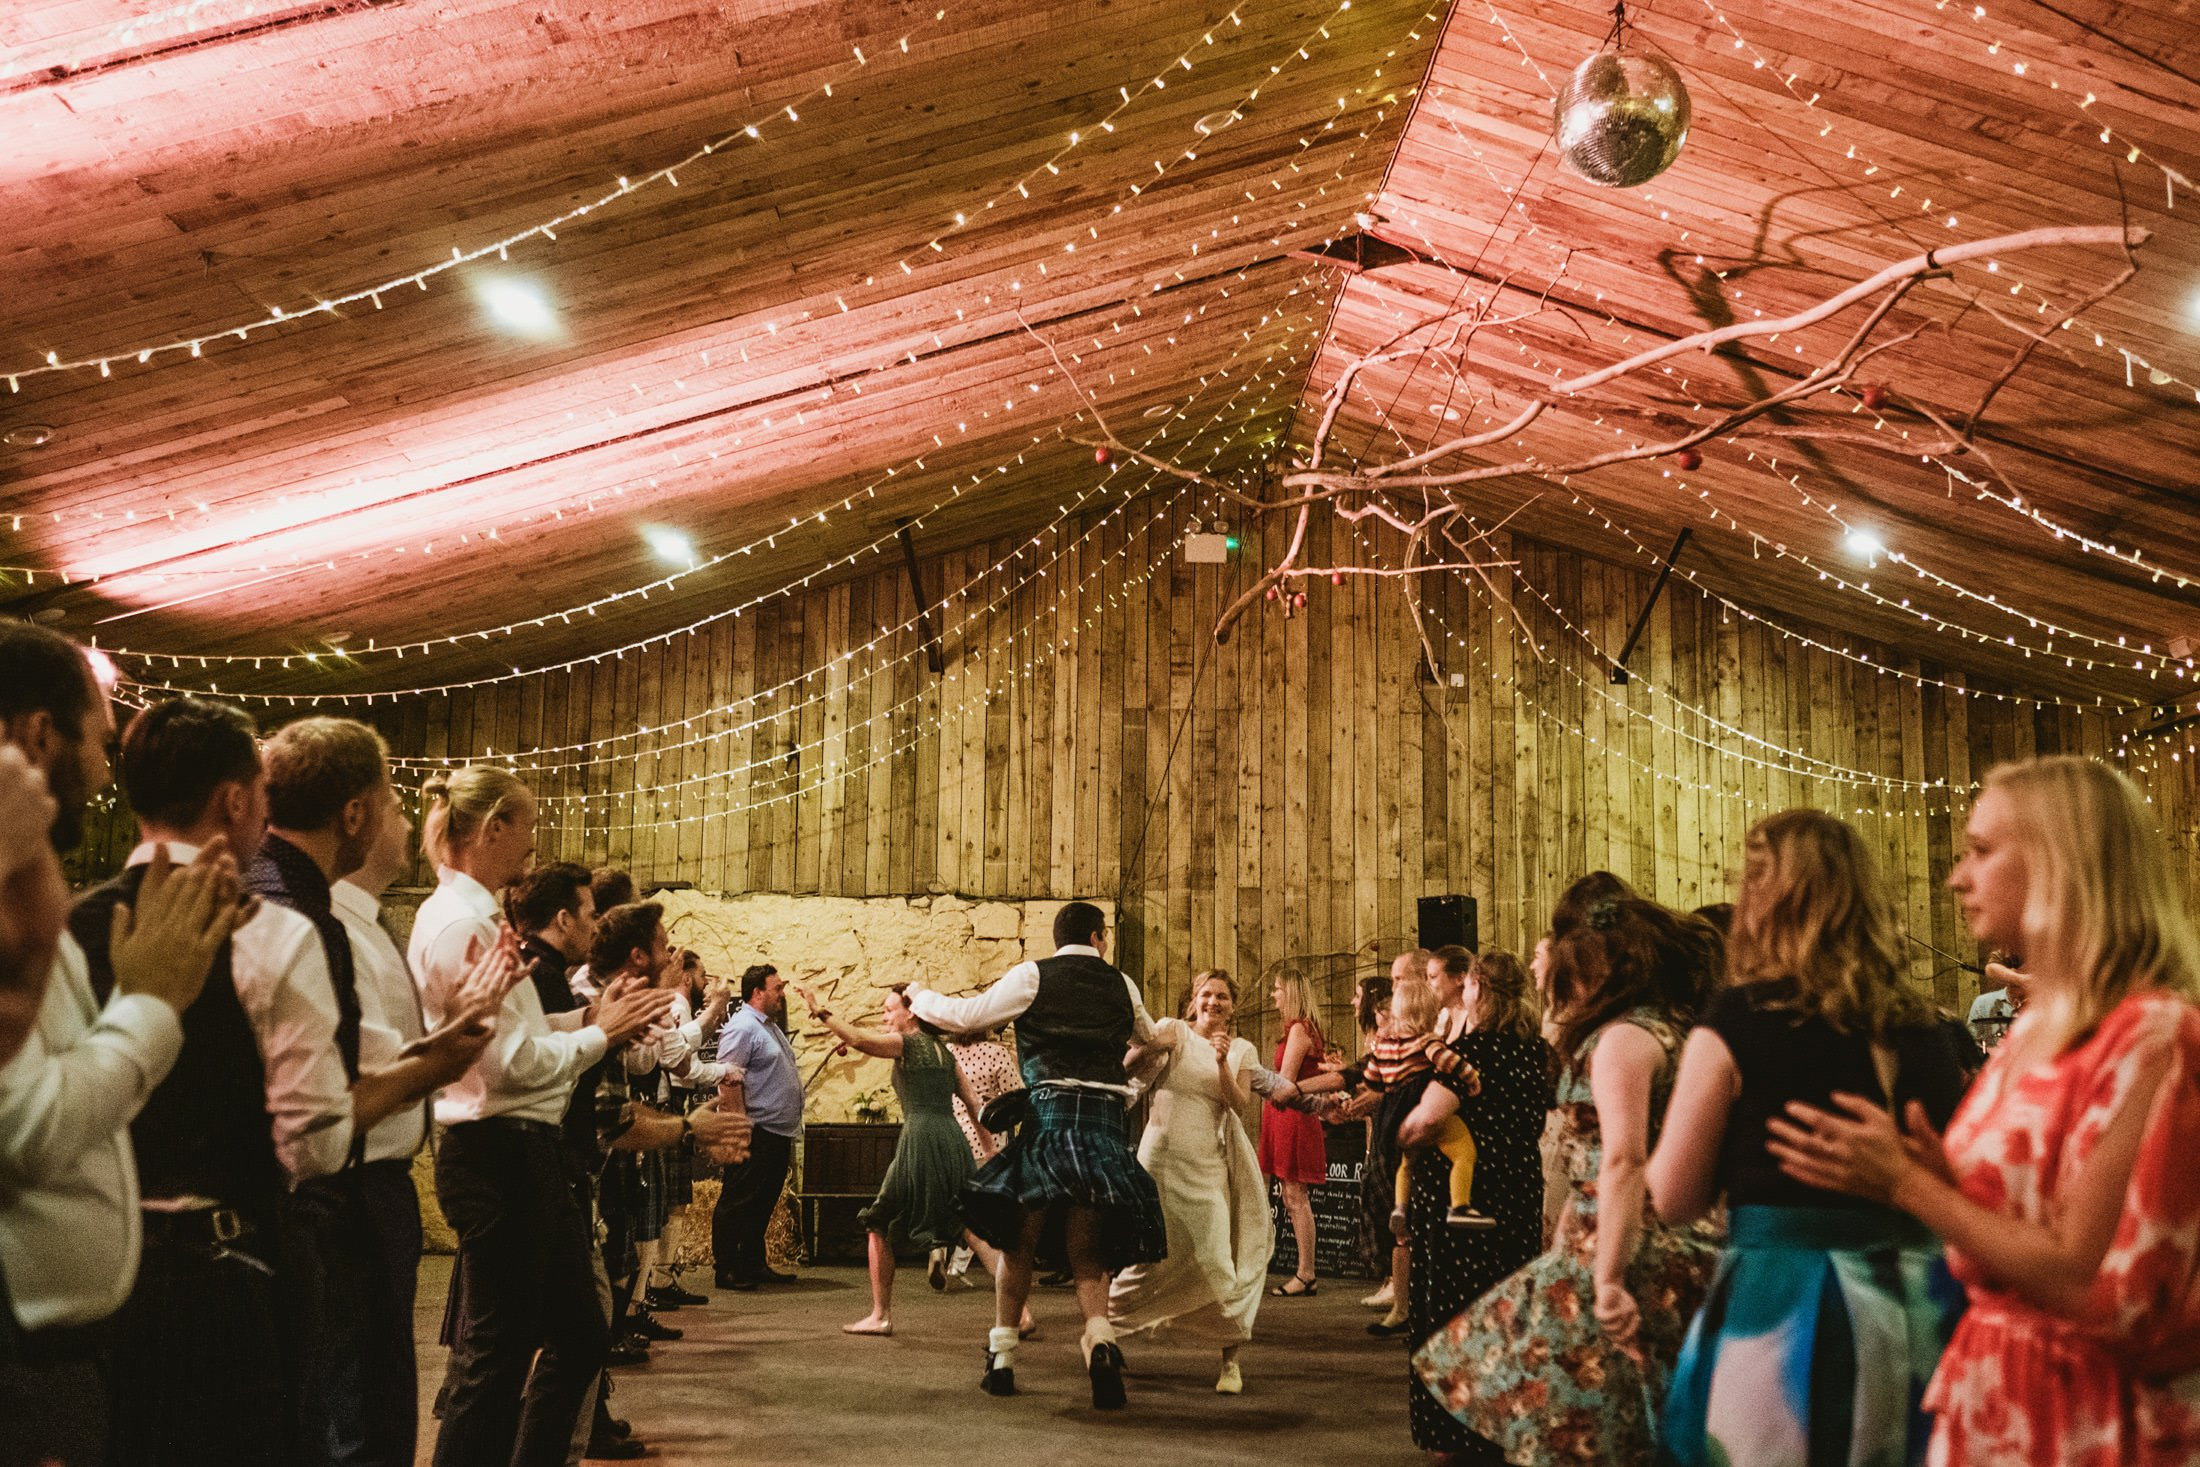 bride and groom ceilidh dancing in the barn at Comrie Croft